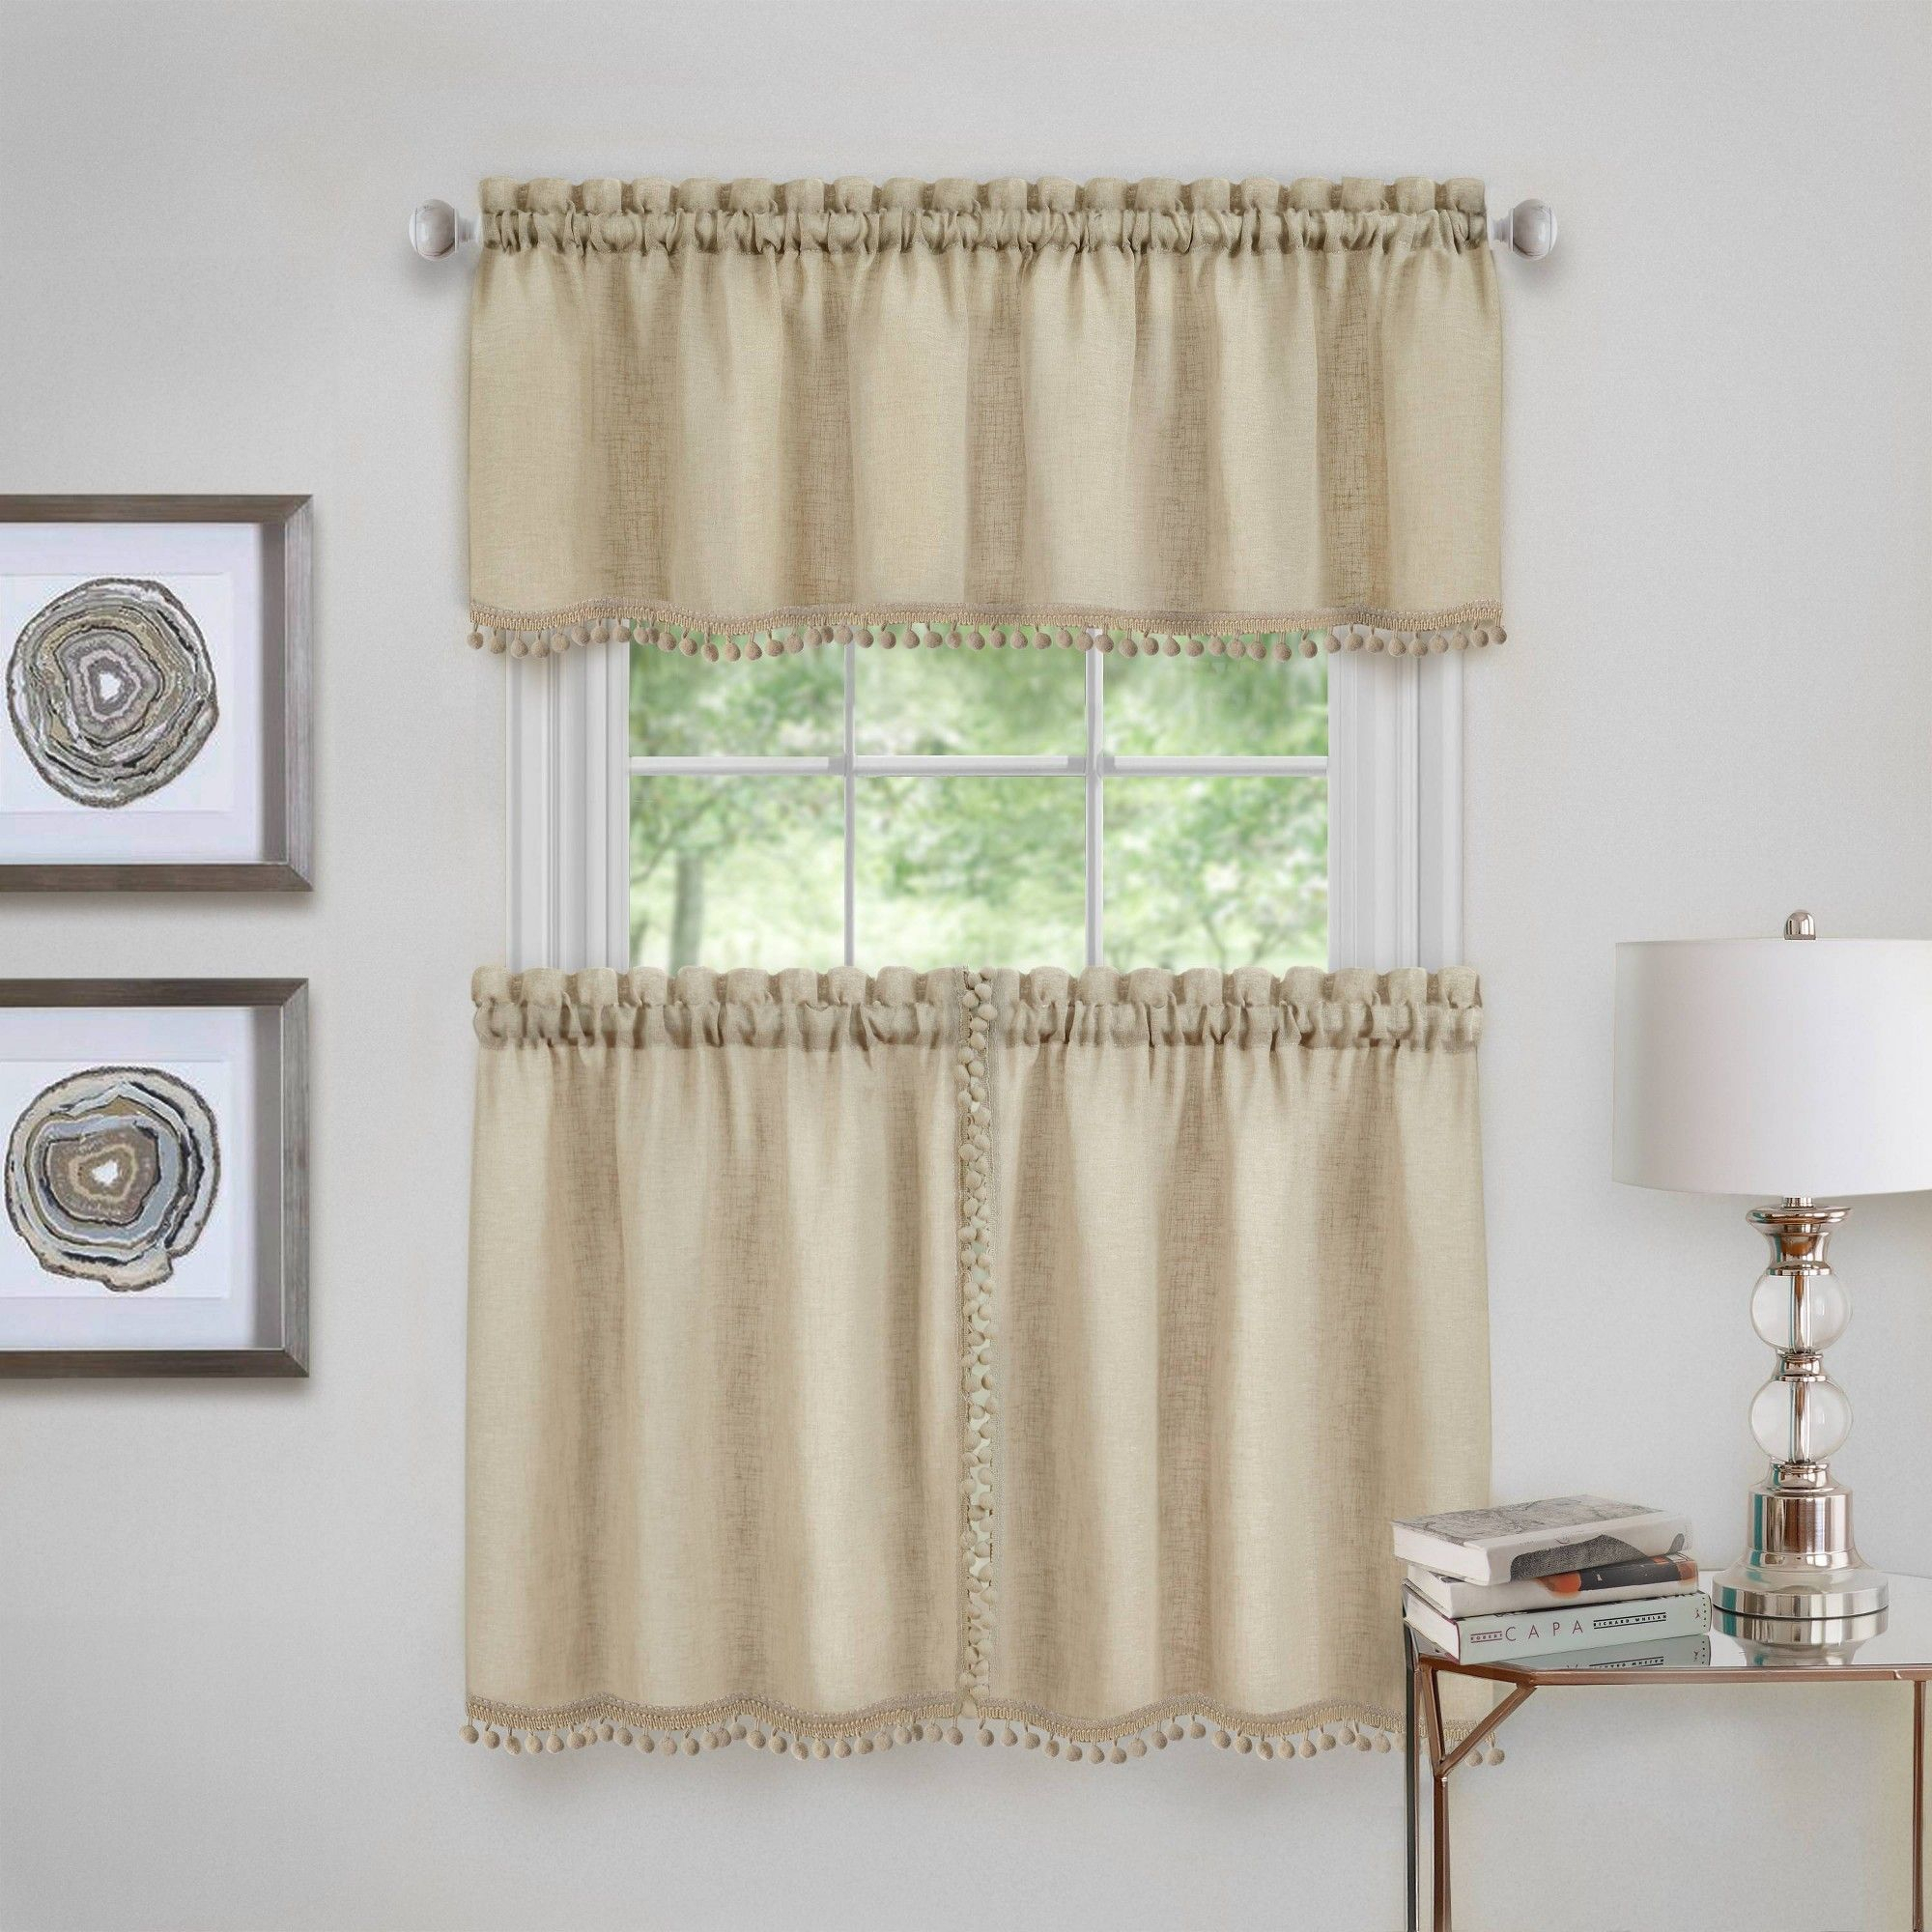 """24""""x58"""" Wallace Kitchen Window Curtain Tier Pair And Valance Pertaining To Window Curtain Tier And Valance Sets (View 11 of 20)"""